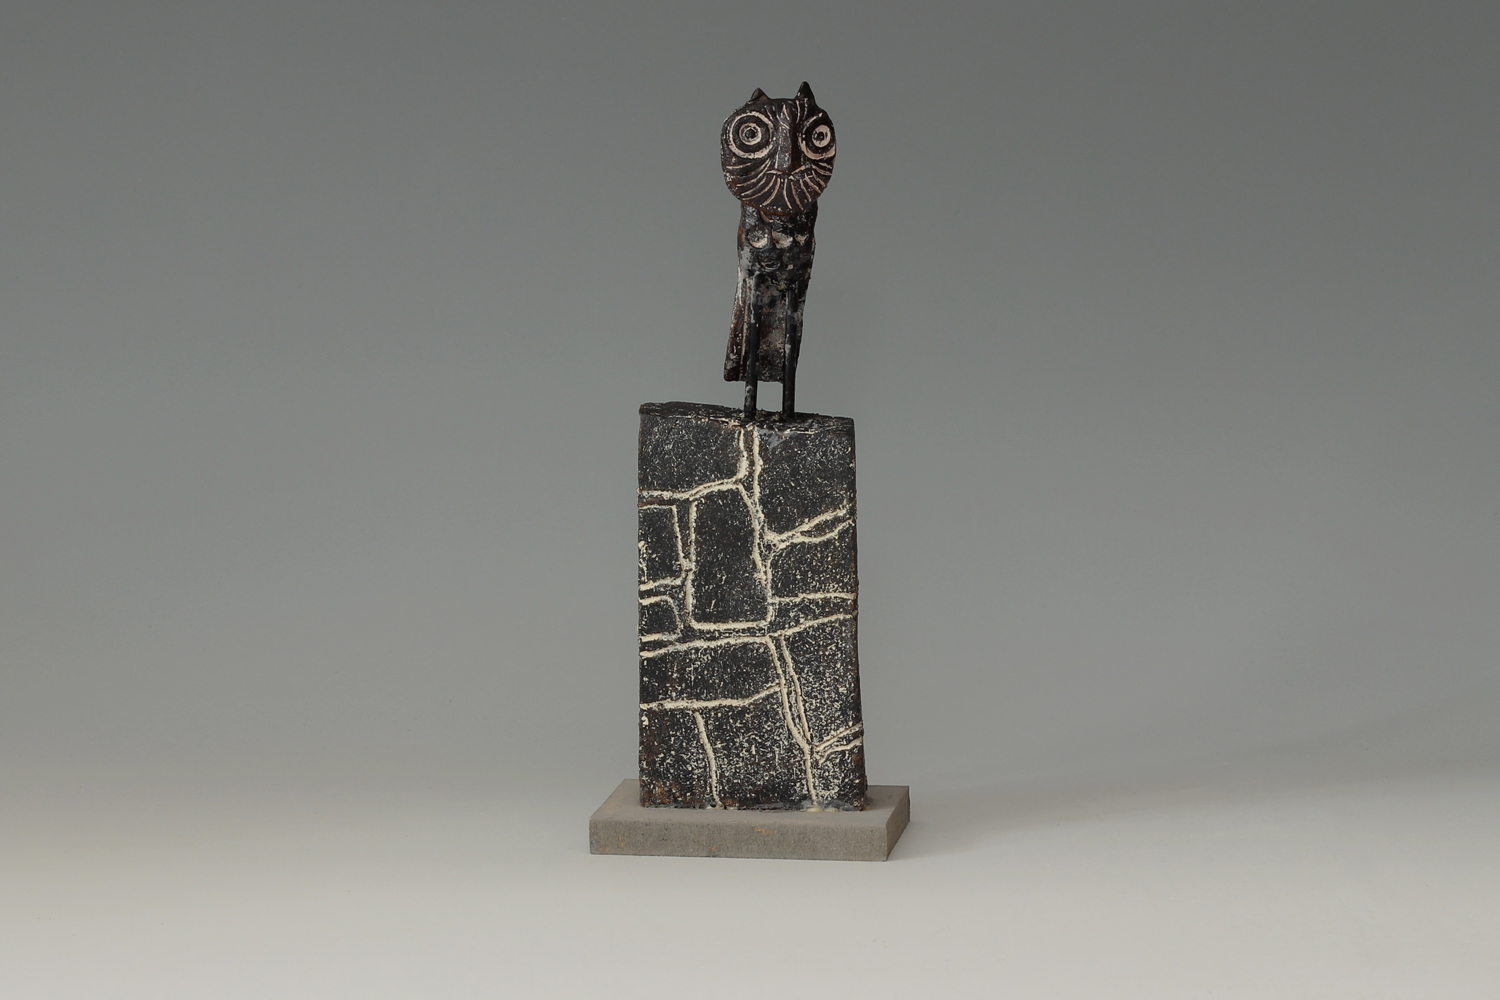 John Maltby Ceramic Sculpture of a 'Wise Owl' 06